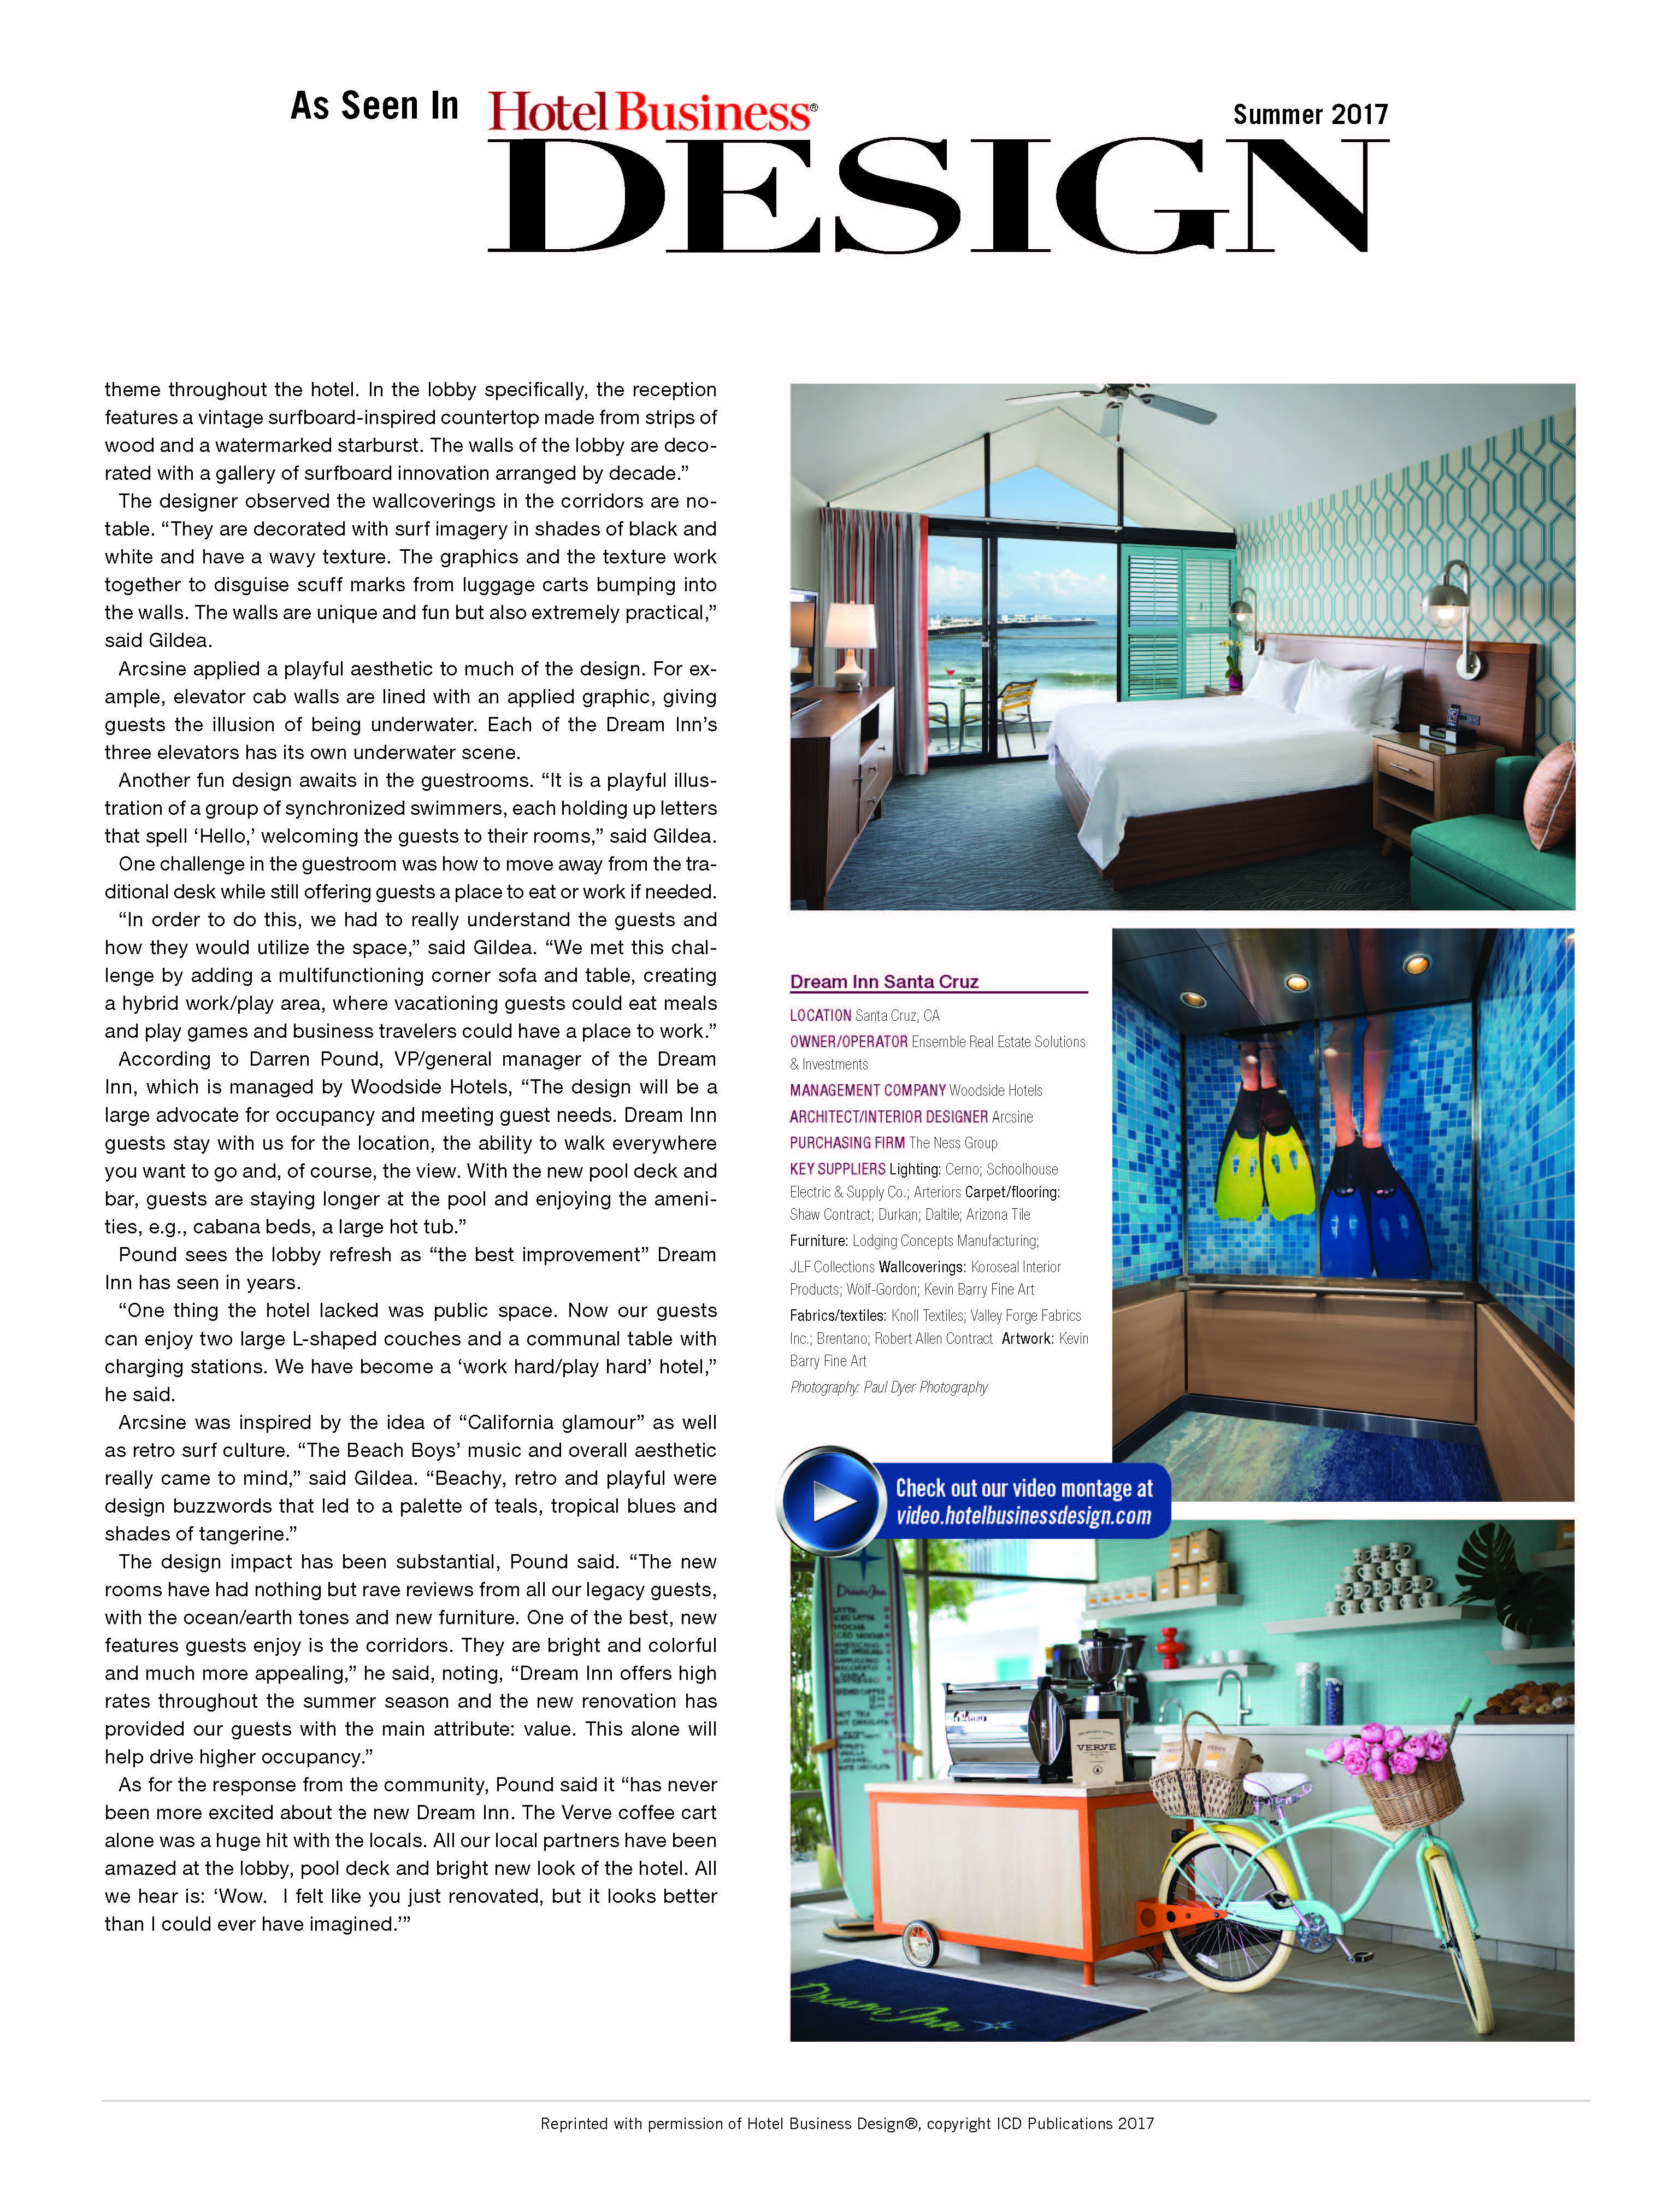 Dream Inn Hotel Business Design Page 2